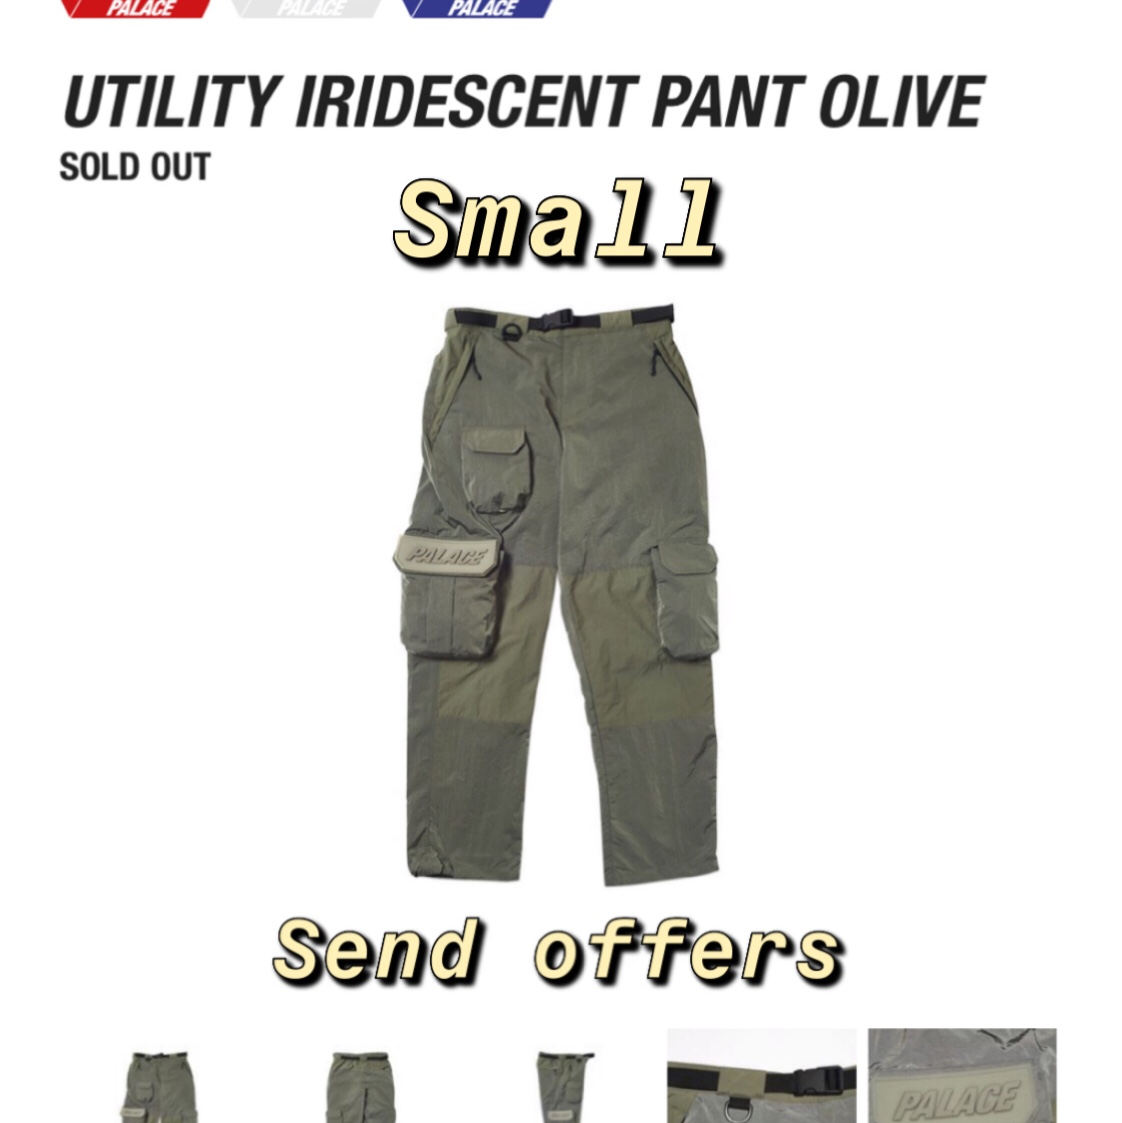 8b414ba2 *SOLD*SOLD*SOLD* Palace SS19 Utility iridescent cargo pant - 0